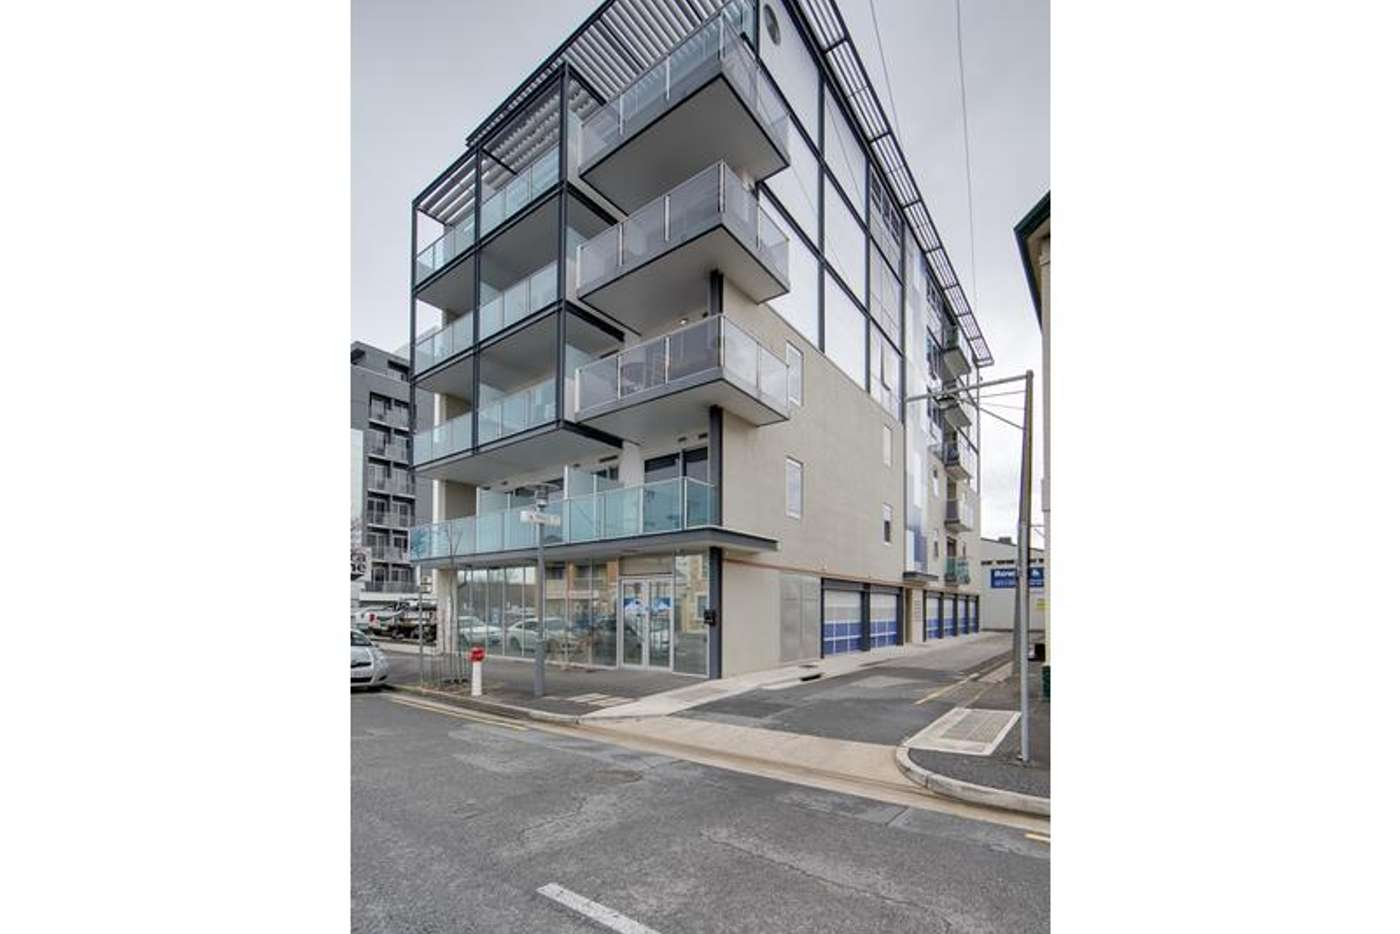 Main view of Homely apartment listing, 202/5 Prince Court, Adelaide SA 5000